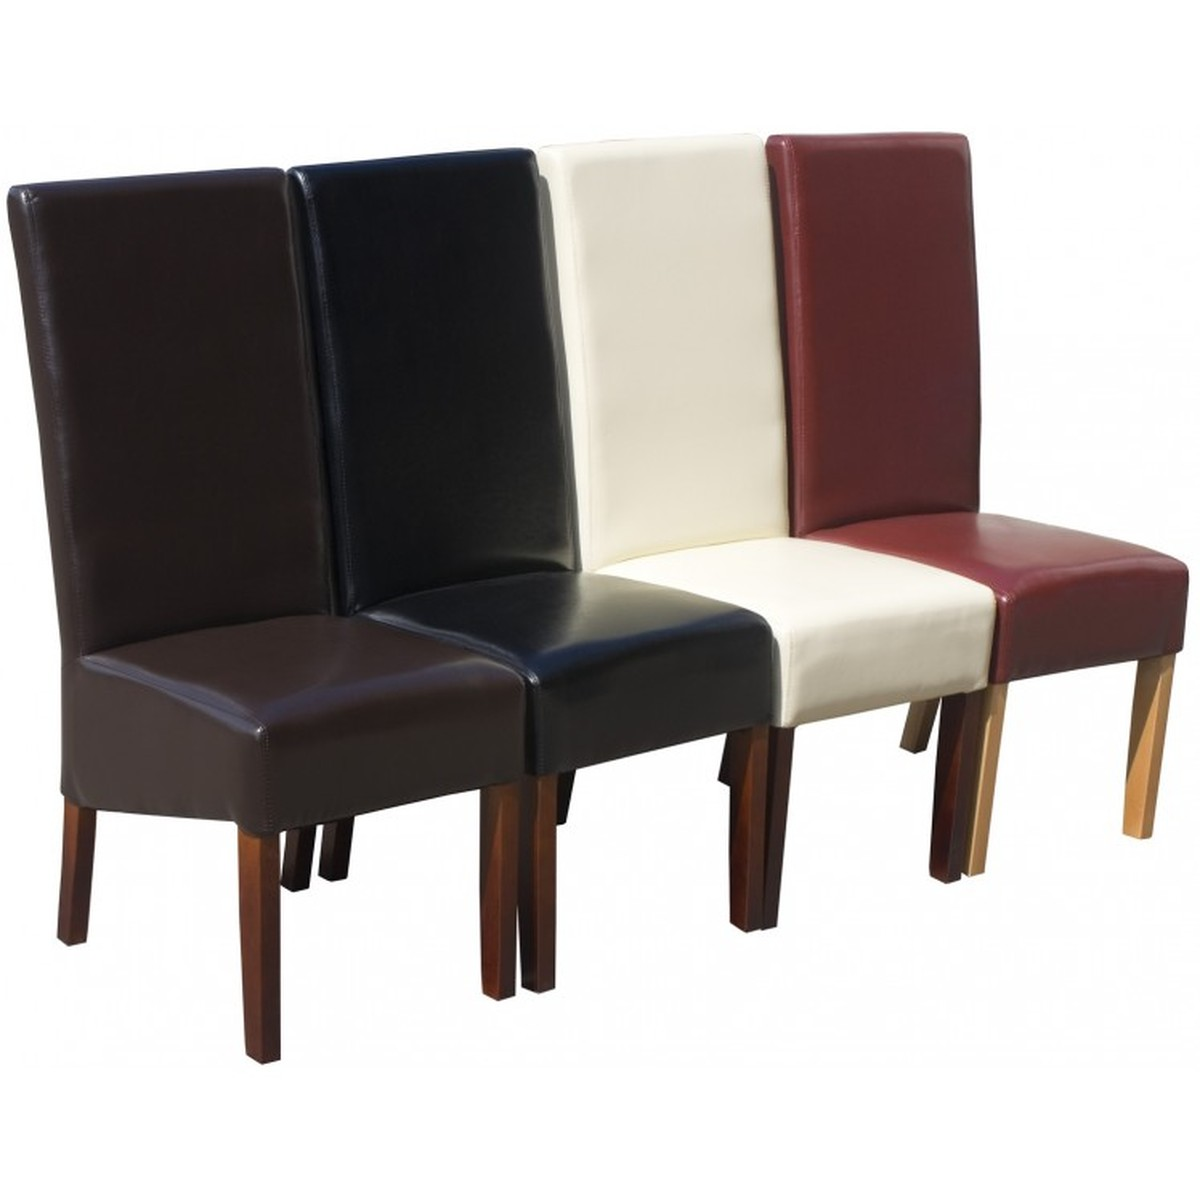 Secondhand Hotel Furniture Restaurant Chairs